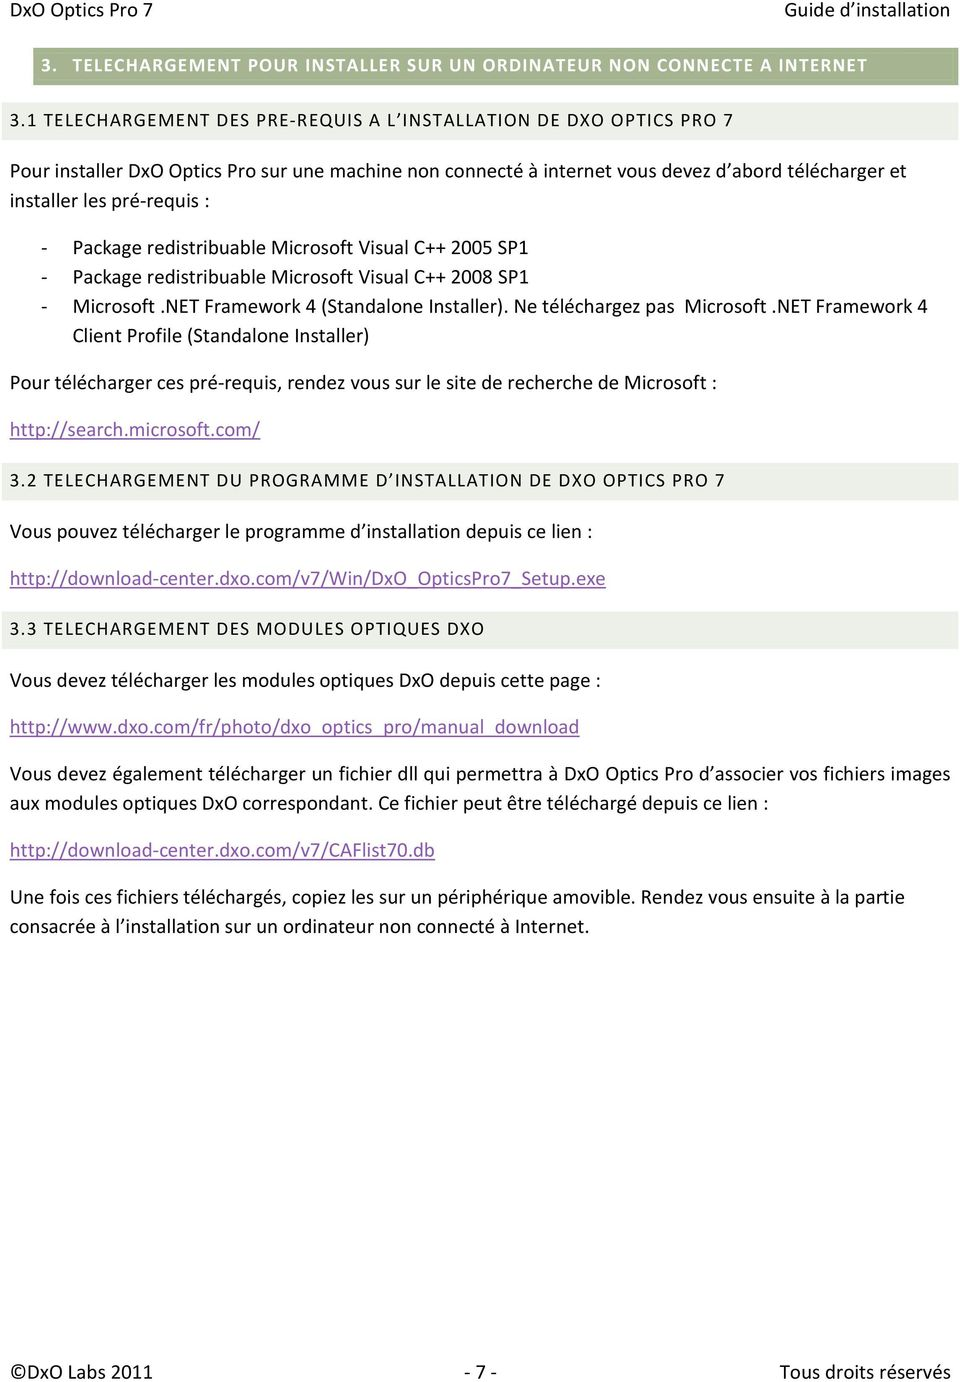 - Package redistribuable Microsoft Visual C++ 2005 SP1 - Package redistribuable Microsoft Visual C++ 2008 SP1 - Microsoft.NET Framework 4 (Standalone Installer). Ne téléchargez pas Microsoft.